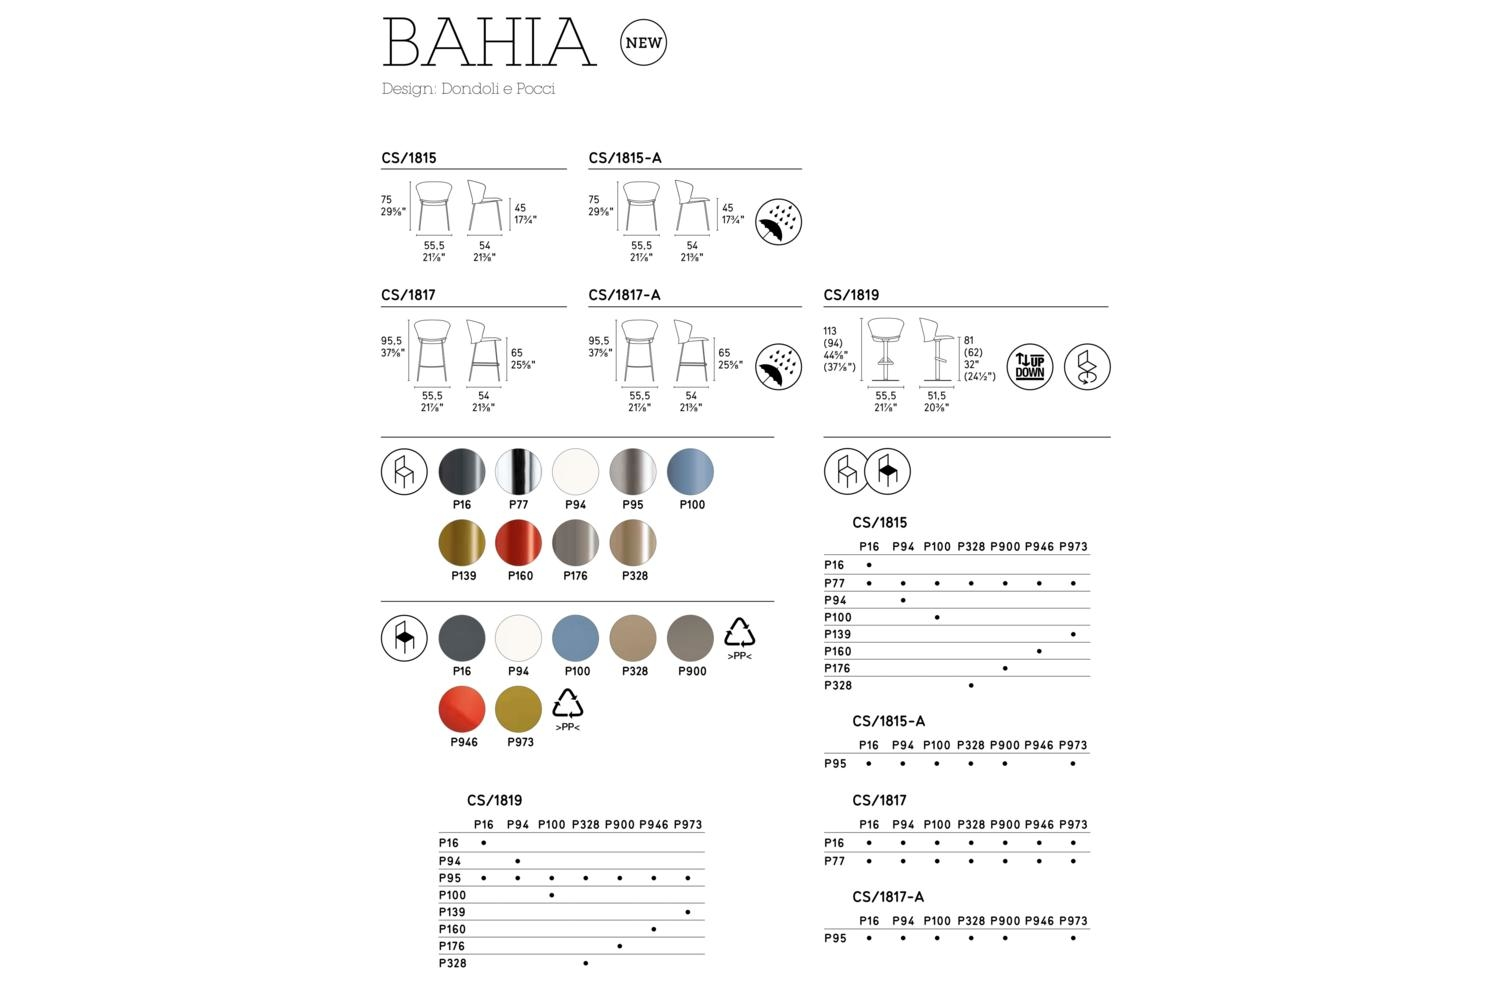 Bahia-Metal-Options---Schematic---Calligaris.jpg Bahia Chairs Stools - Metal Frame versions - Schematics - Calligaris Bahia-Metal-Options---Schematic---Calligaris.jpg